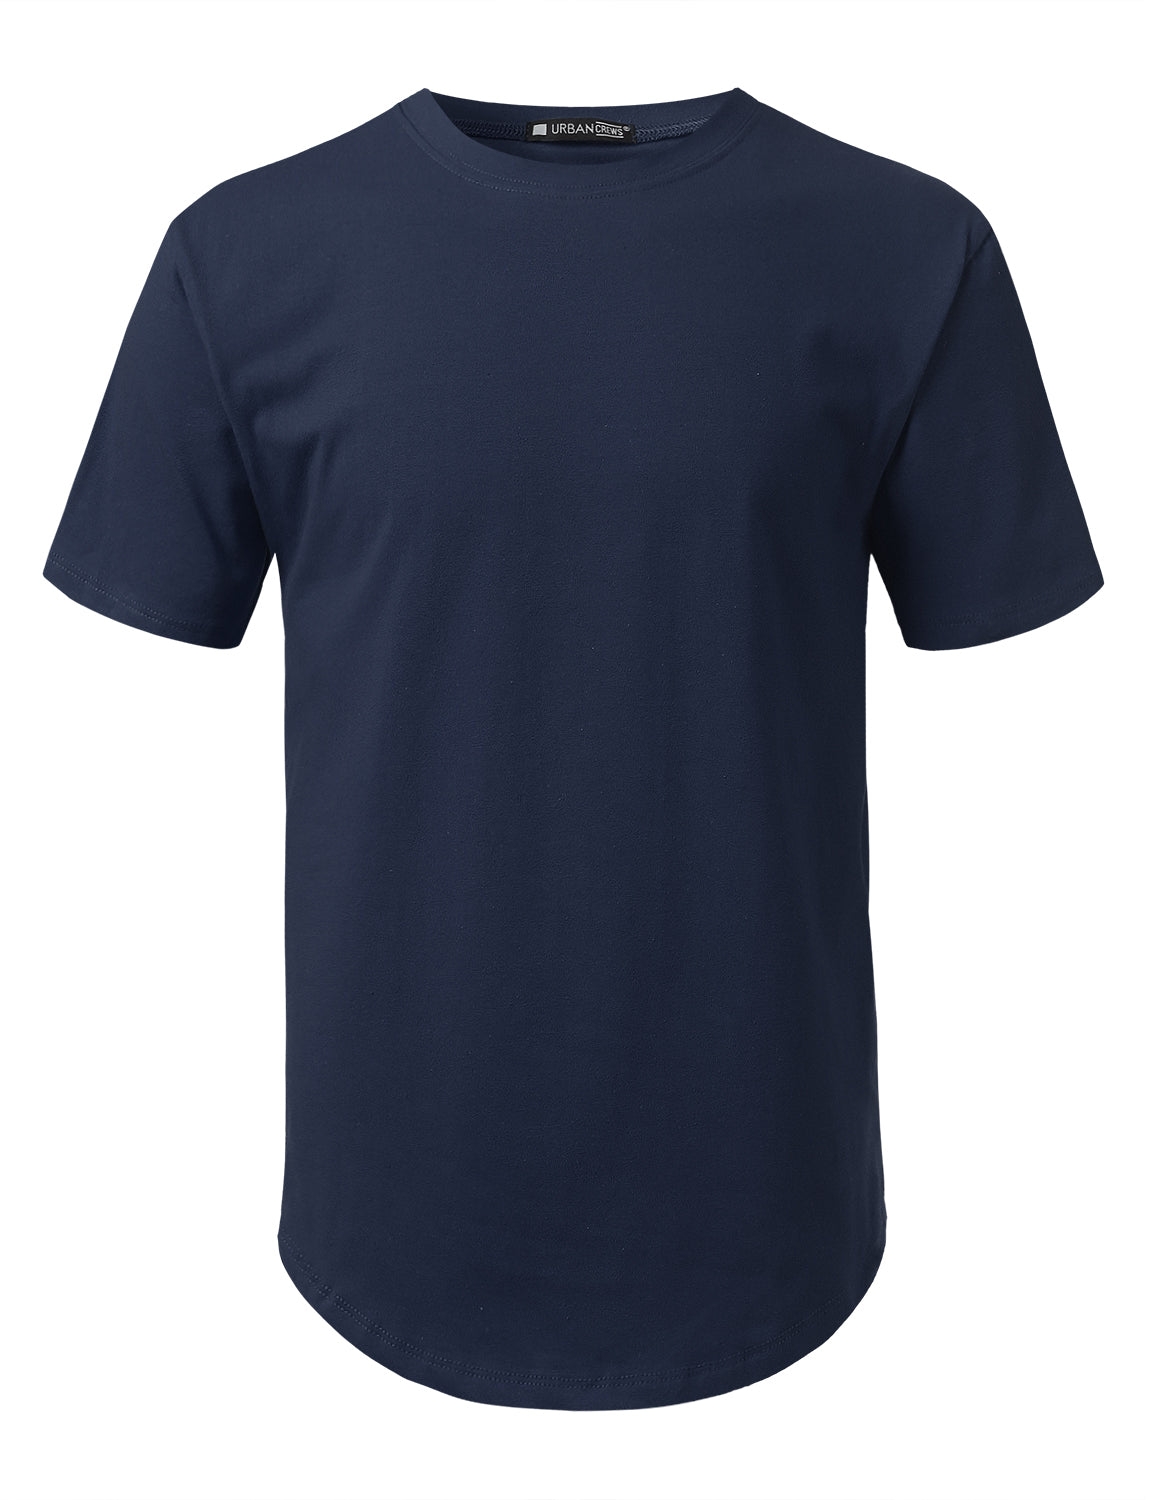 NAVY Solid Color Cotton T-shirt - URBANCREWS